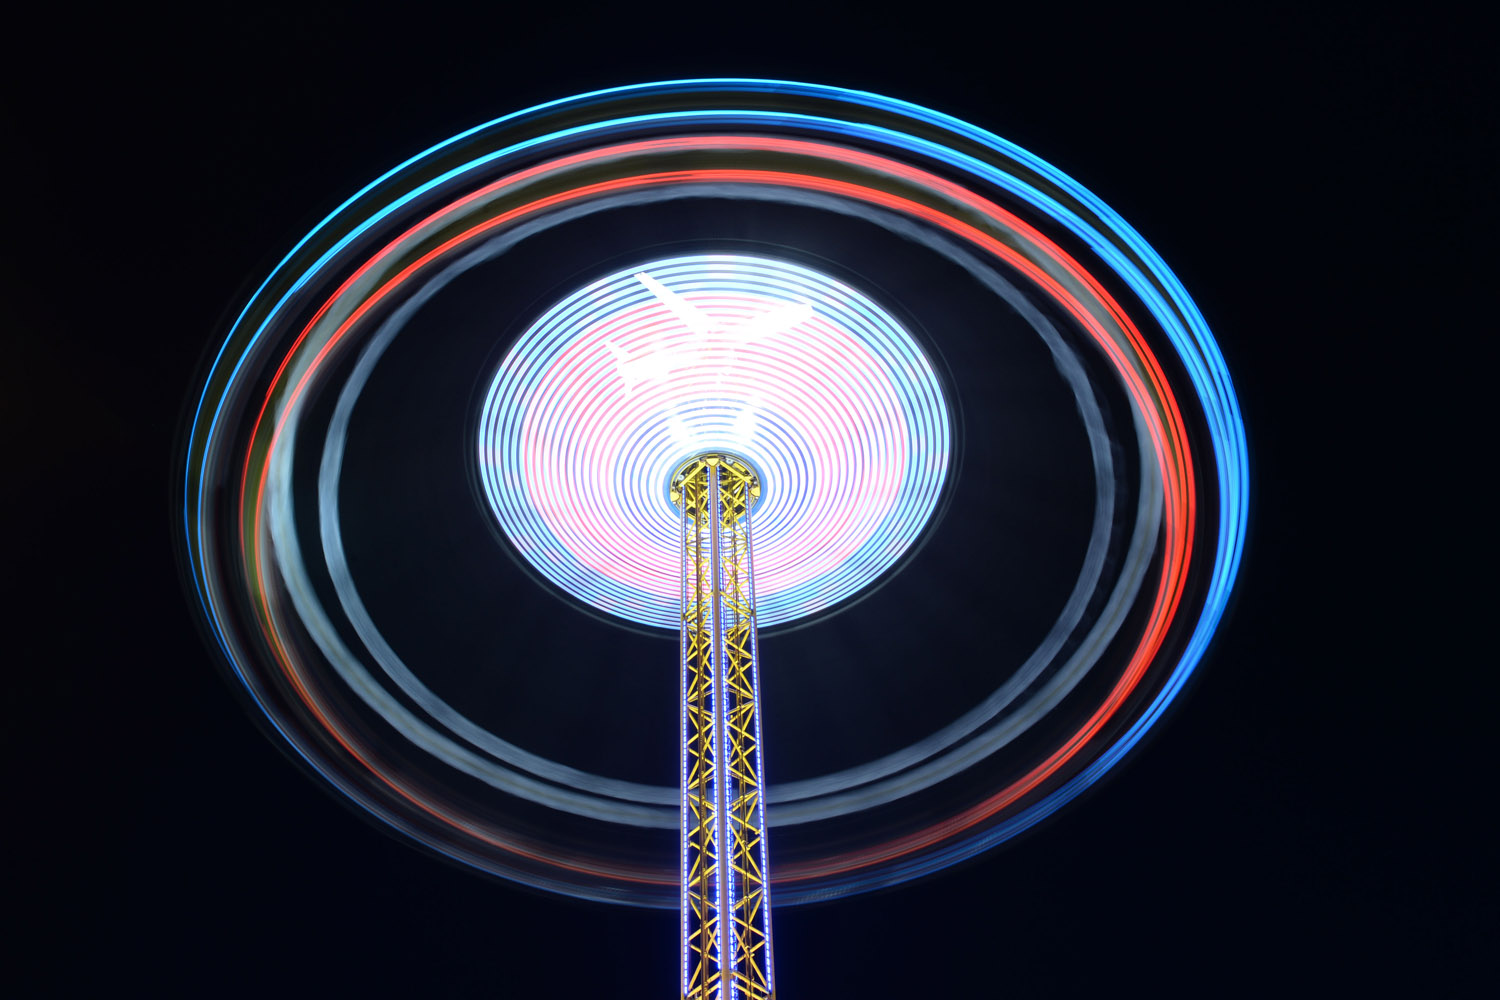 Sept. 21, 2013. Picture taken with a long exposure time shows a fun ride turning at the Oktoberfest beer festival on the Theresienwiese fair grounds in Munich, southern Germany.